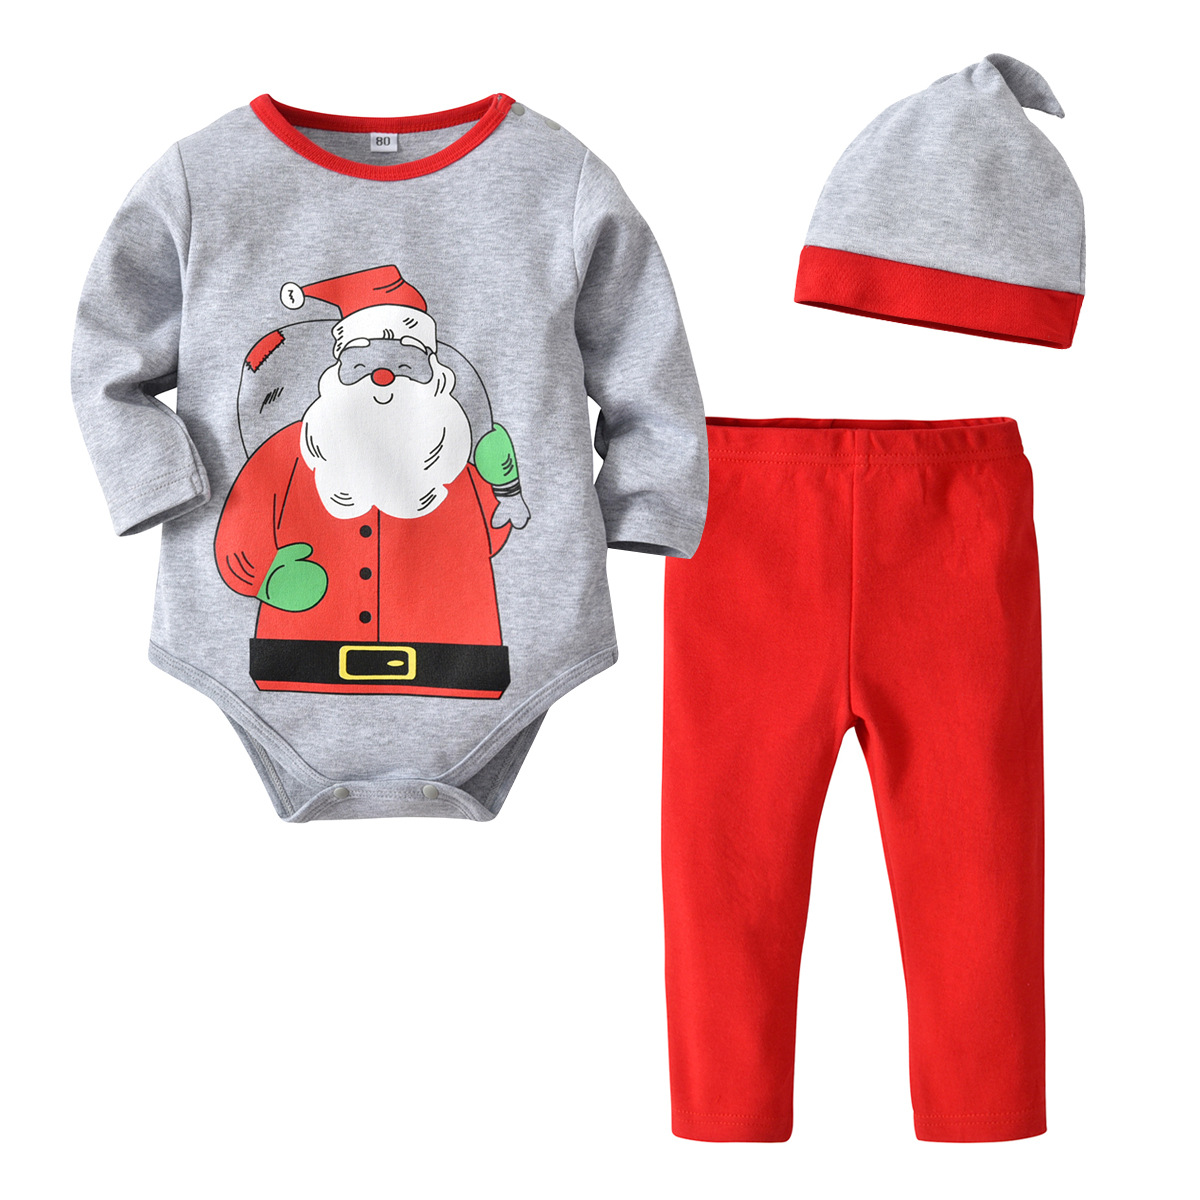 Christmas Outfit Newborn Infant Baby Girl Boy Striped Romper Jumpsuit Colorful